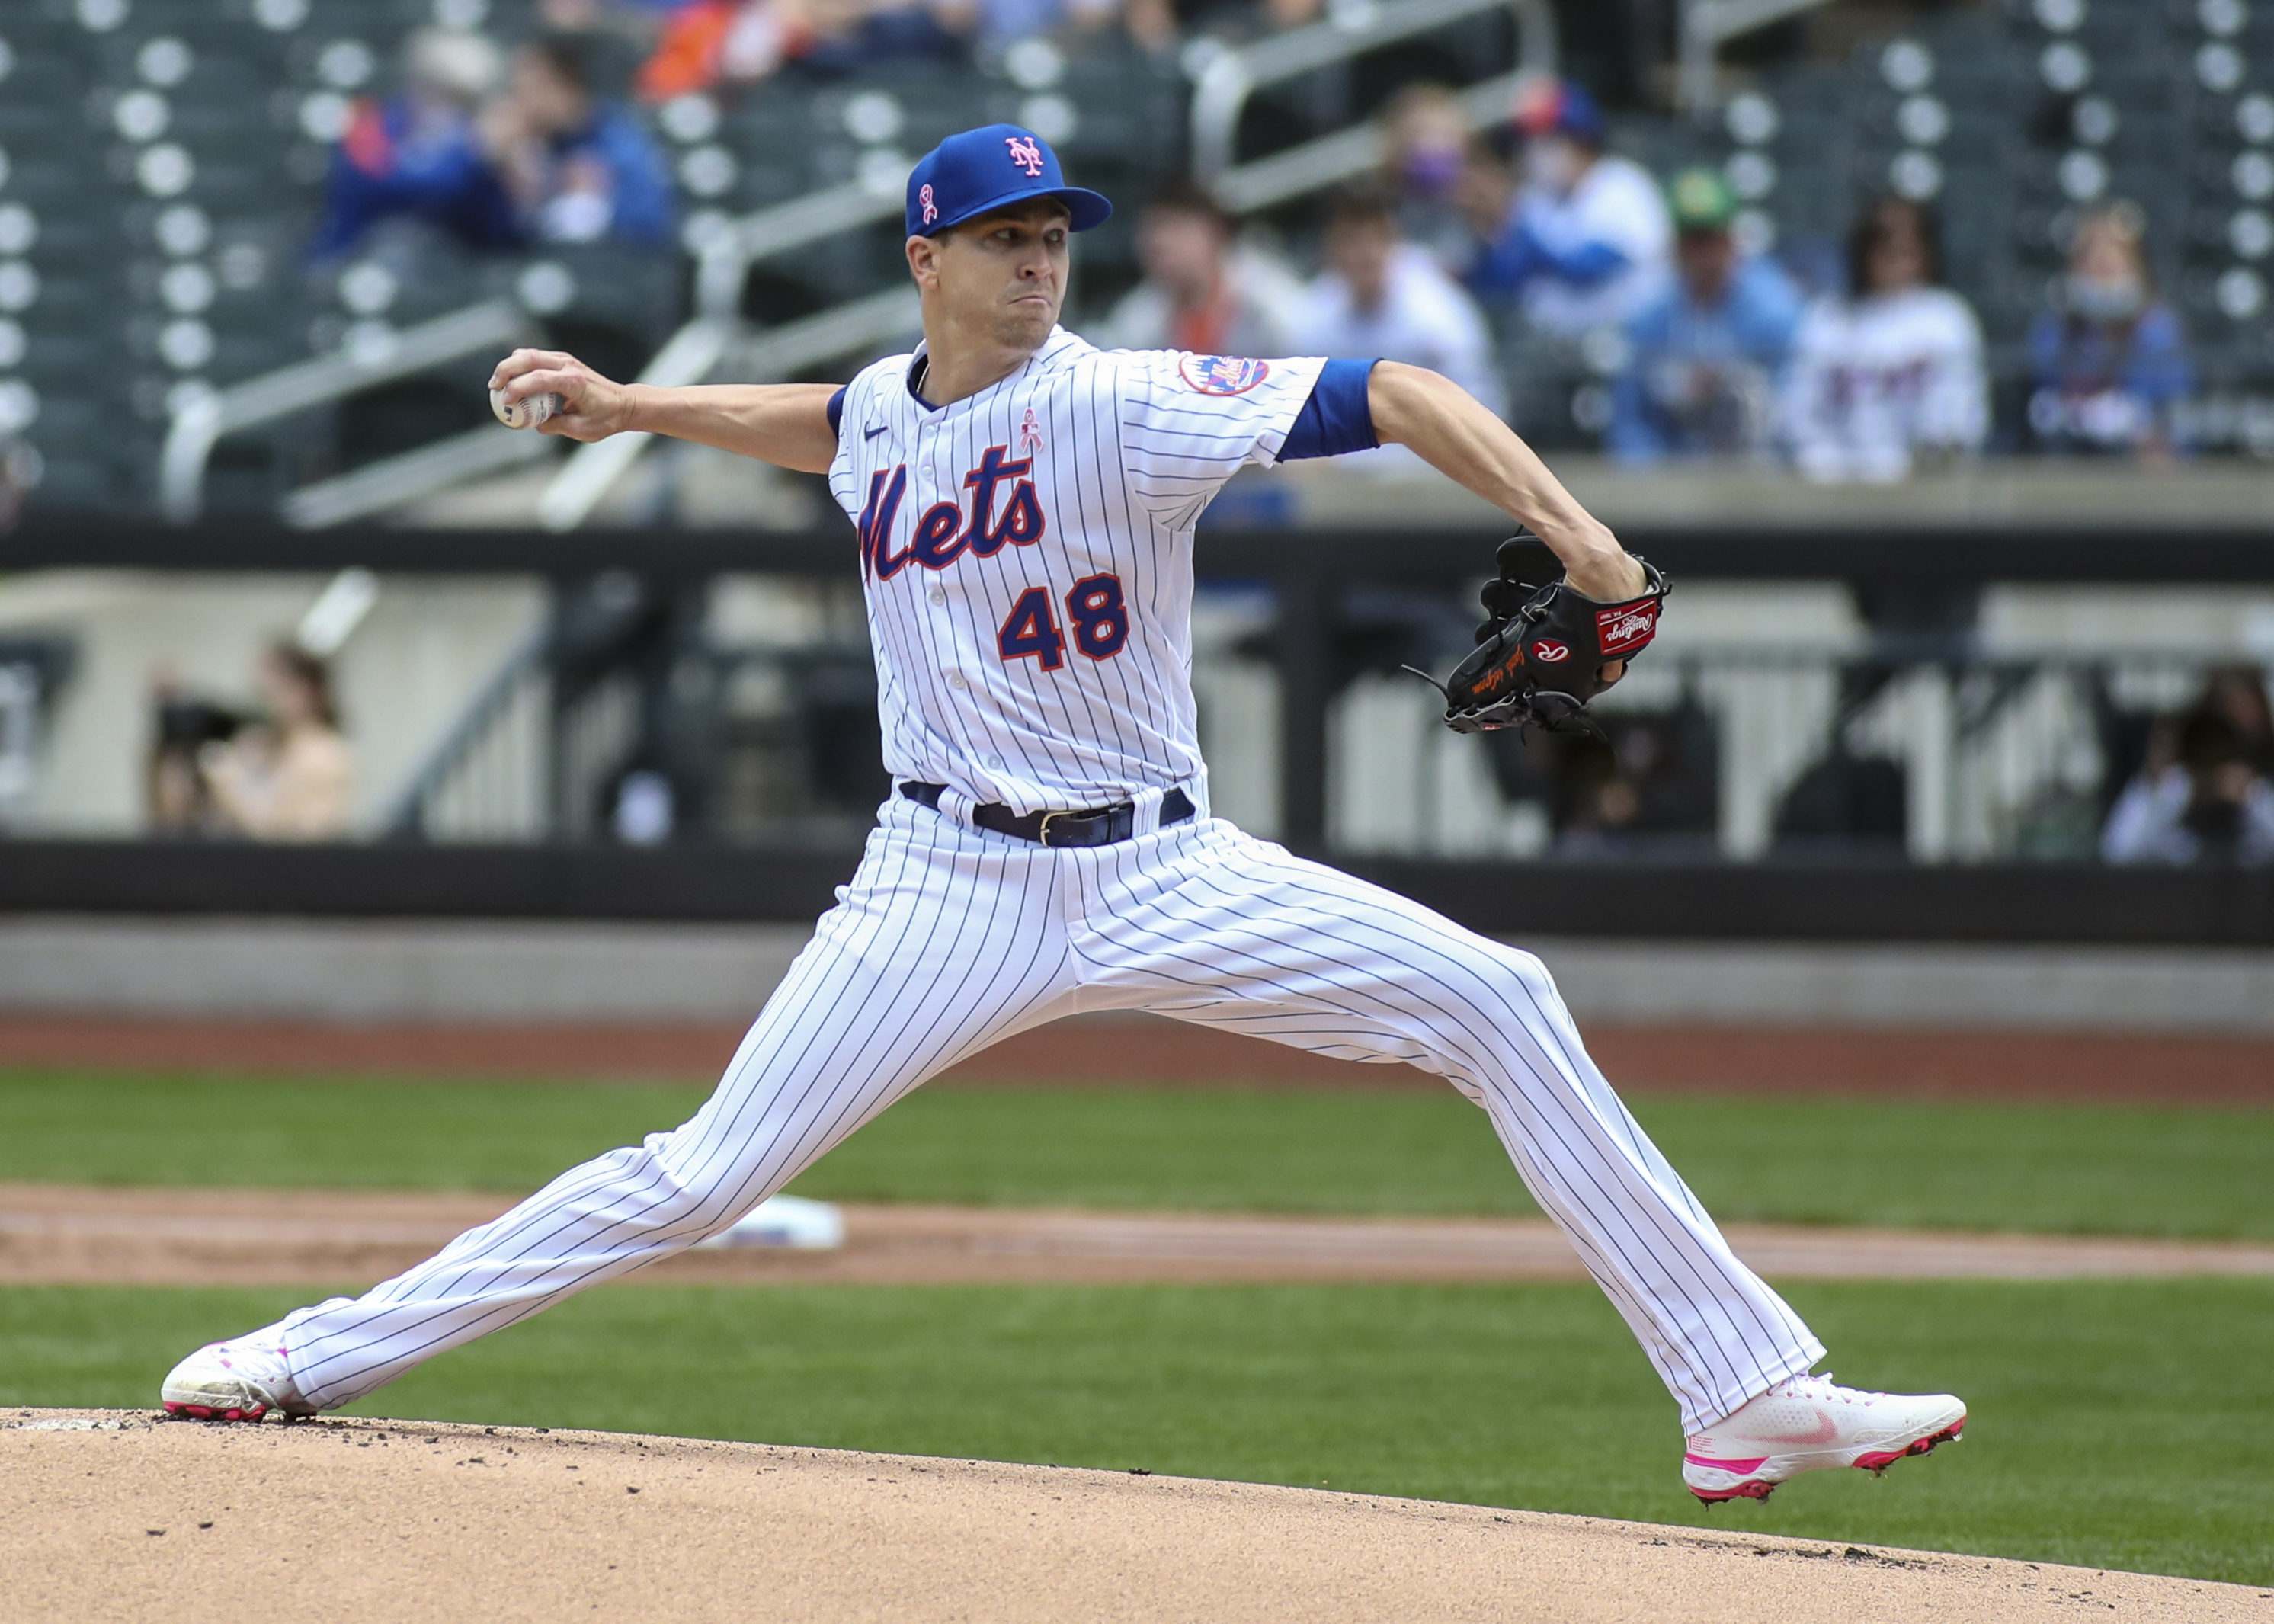 New York Mets pitcher Jacob deGrom pitches in the first inning against the Arizona Diamondbacks at Citi Field.